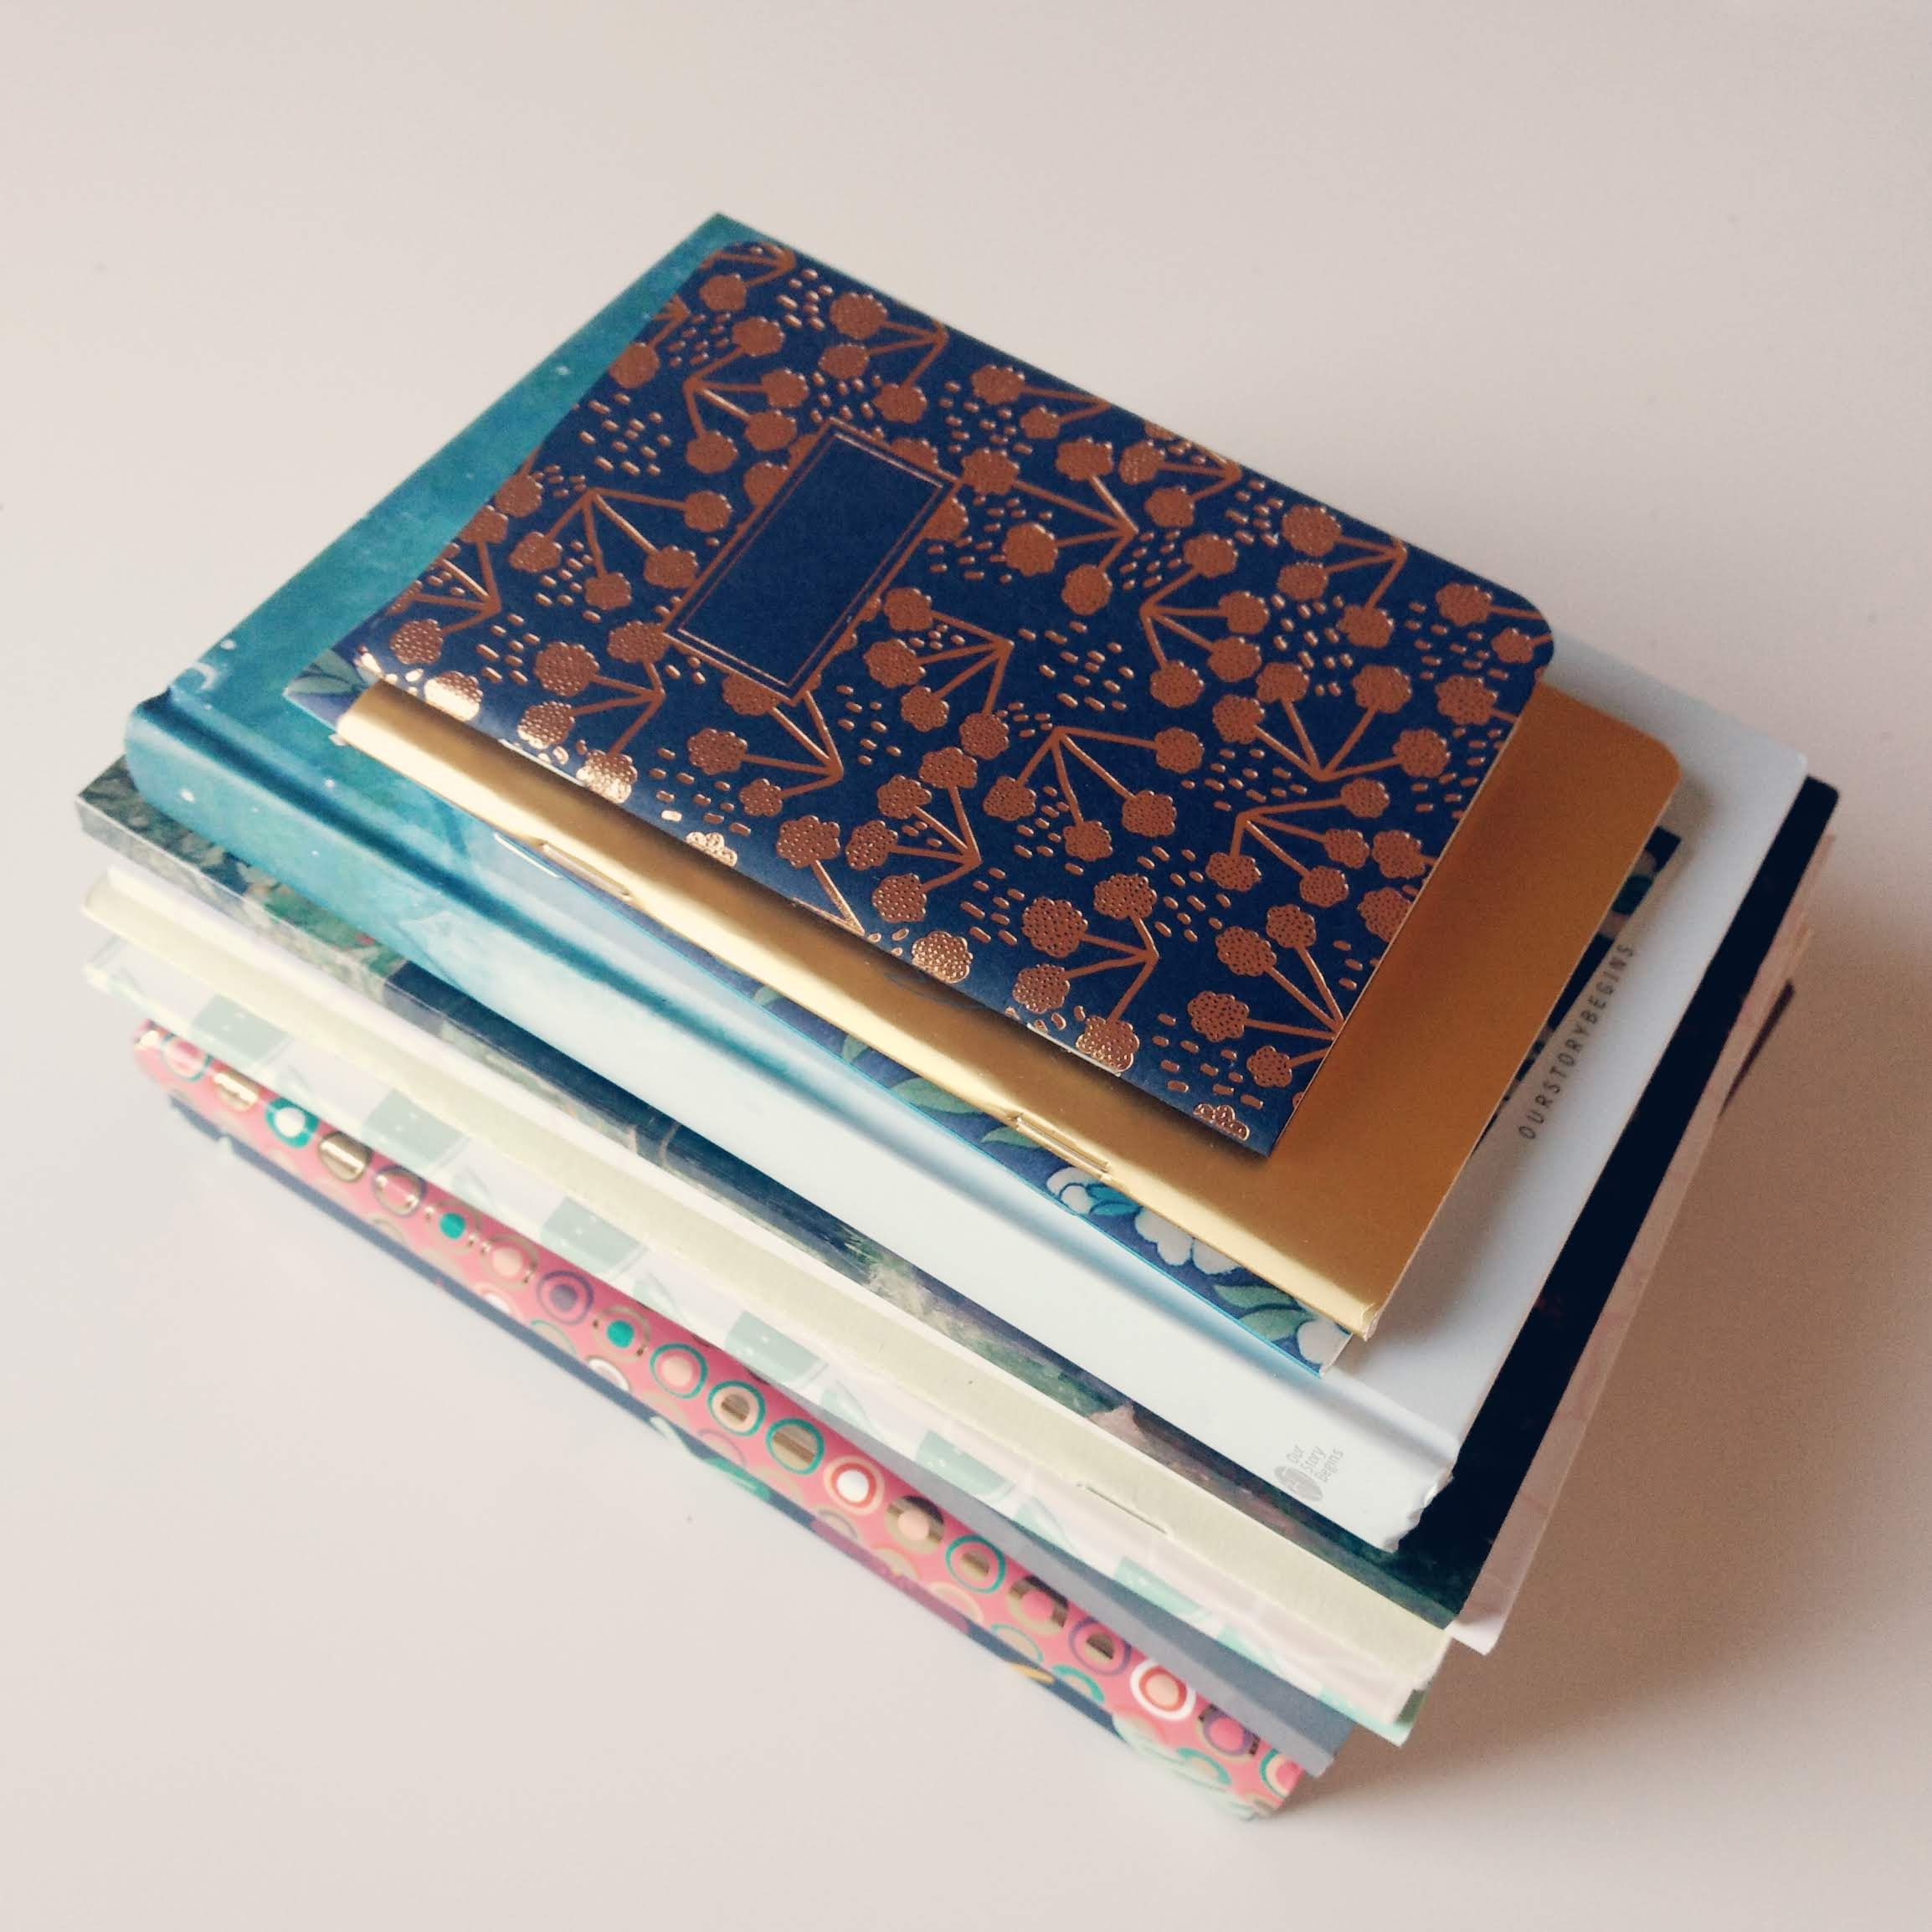 A stack of pretty notebooks.